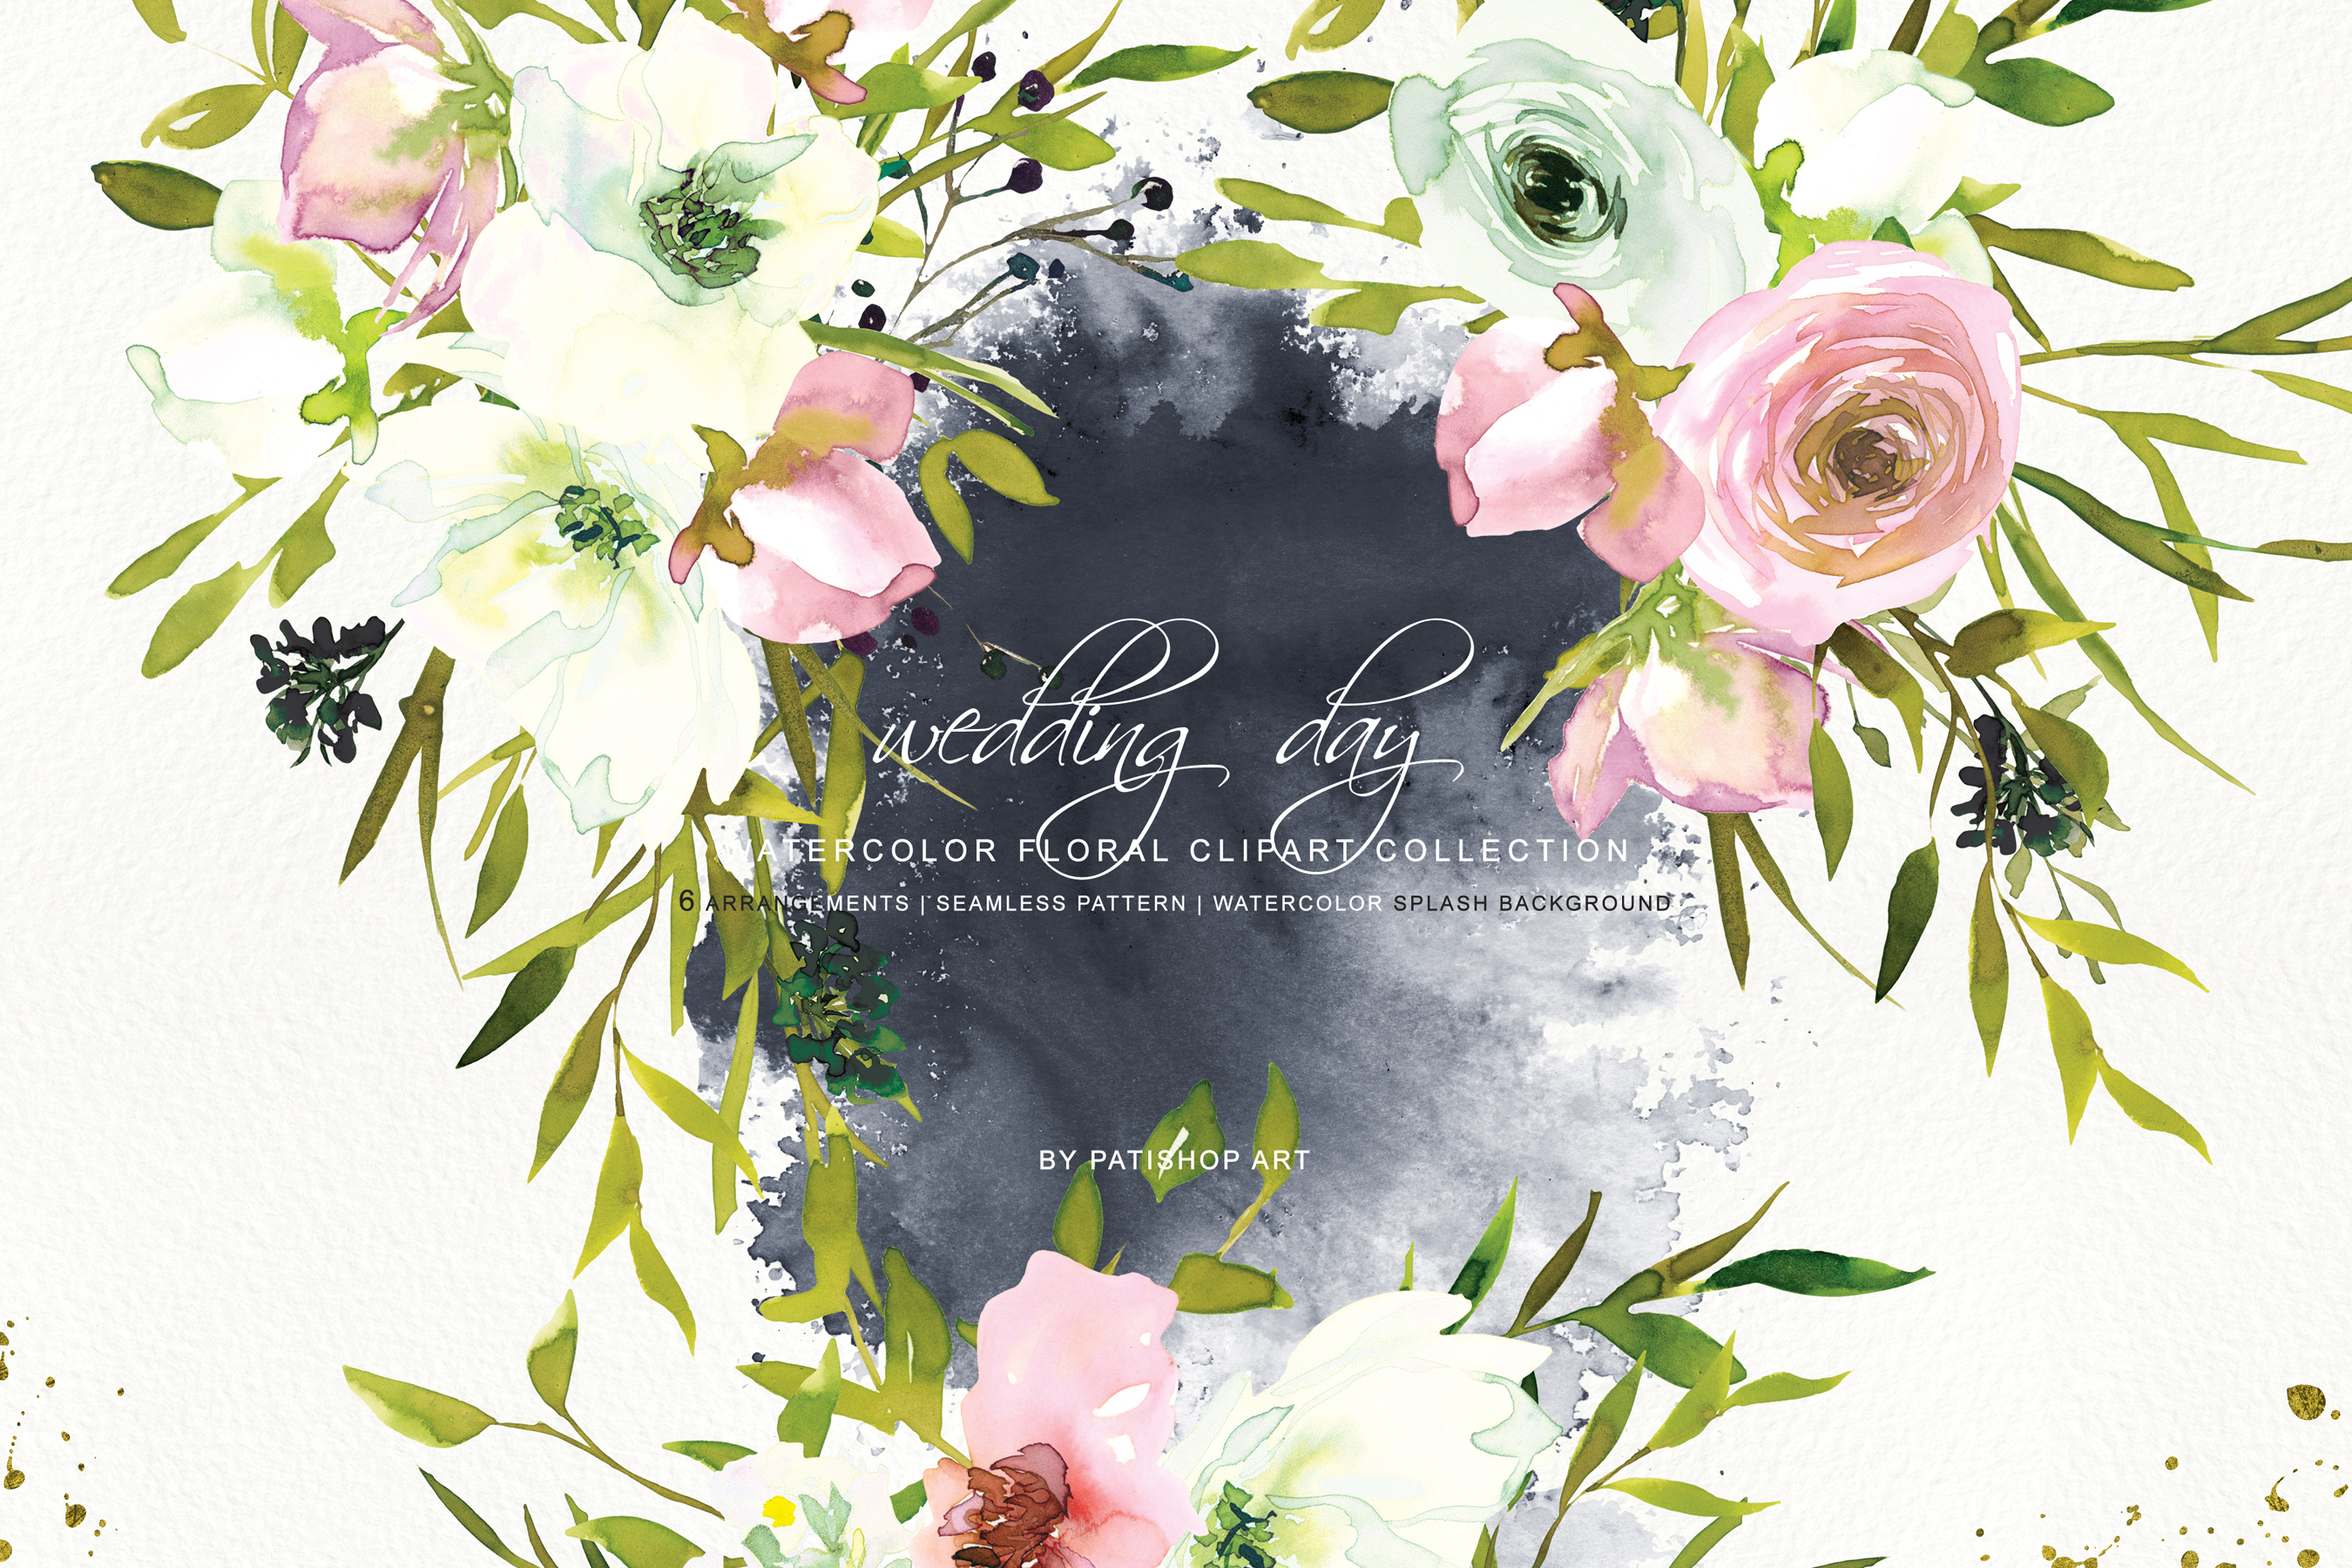 Watercolor Blush and White Florals Clipart Seamless Pattern example image 3